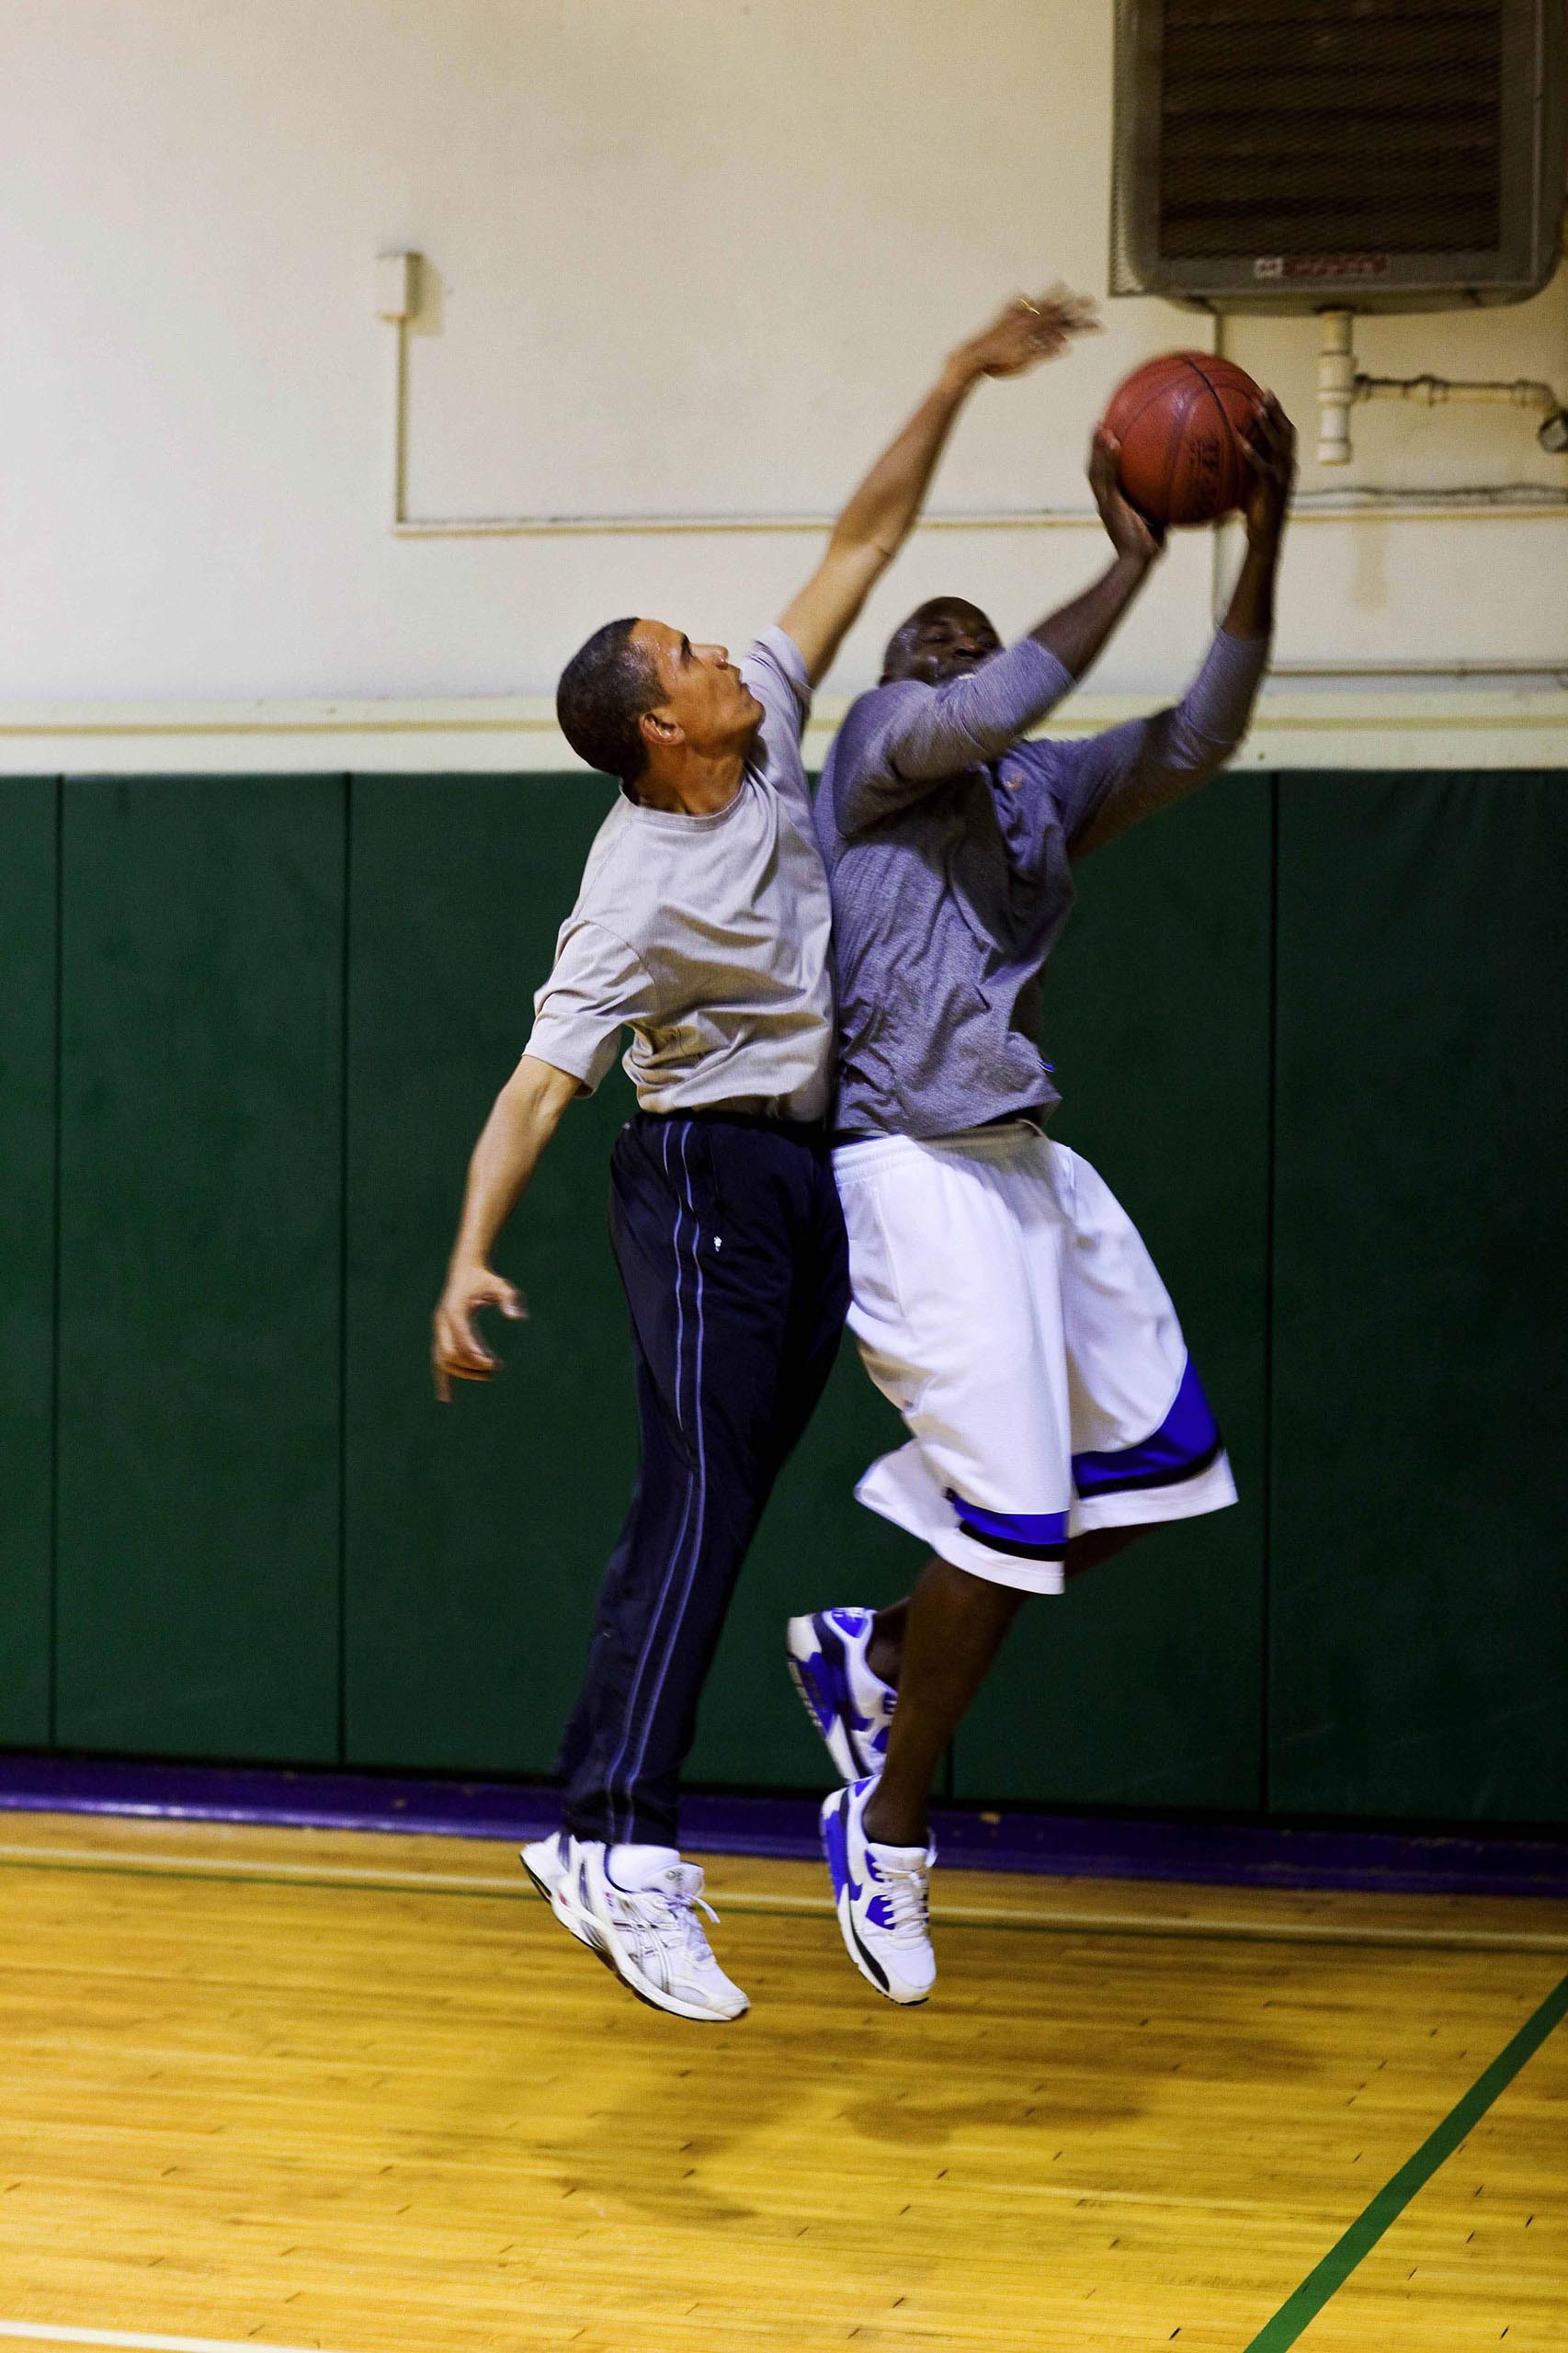 President Barack Obama blocks a shot while playing basketball with personal aide Reggie Love at St Bartholomew's Church in New York City, where the President is attending the United Nations General Assembly, Sept. 23, 2009.